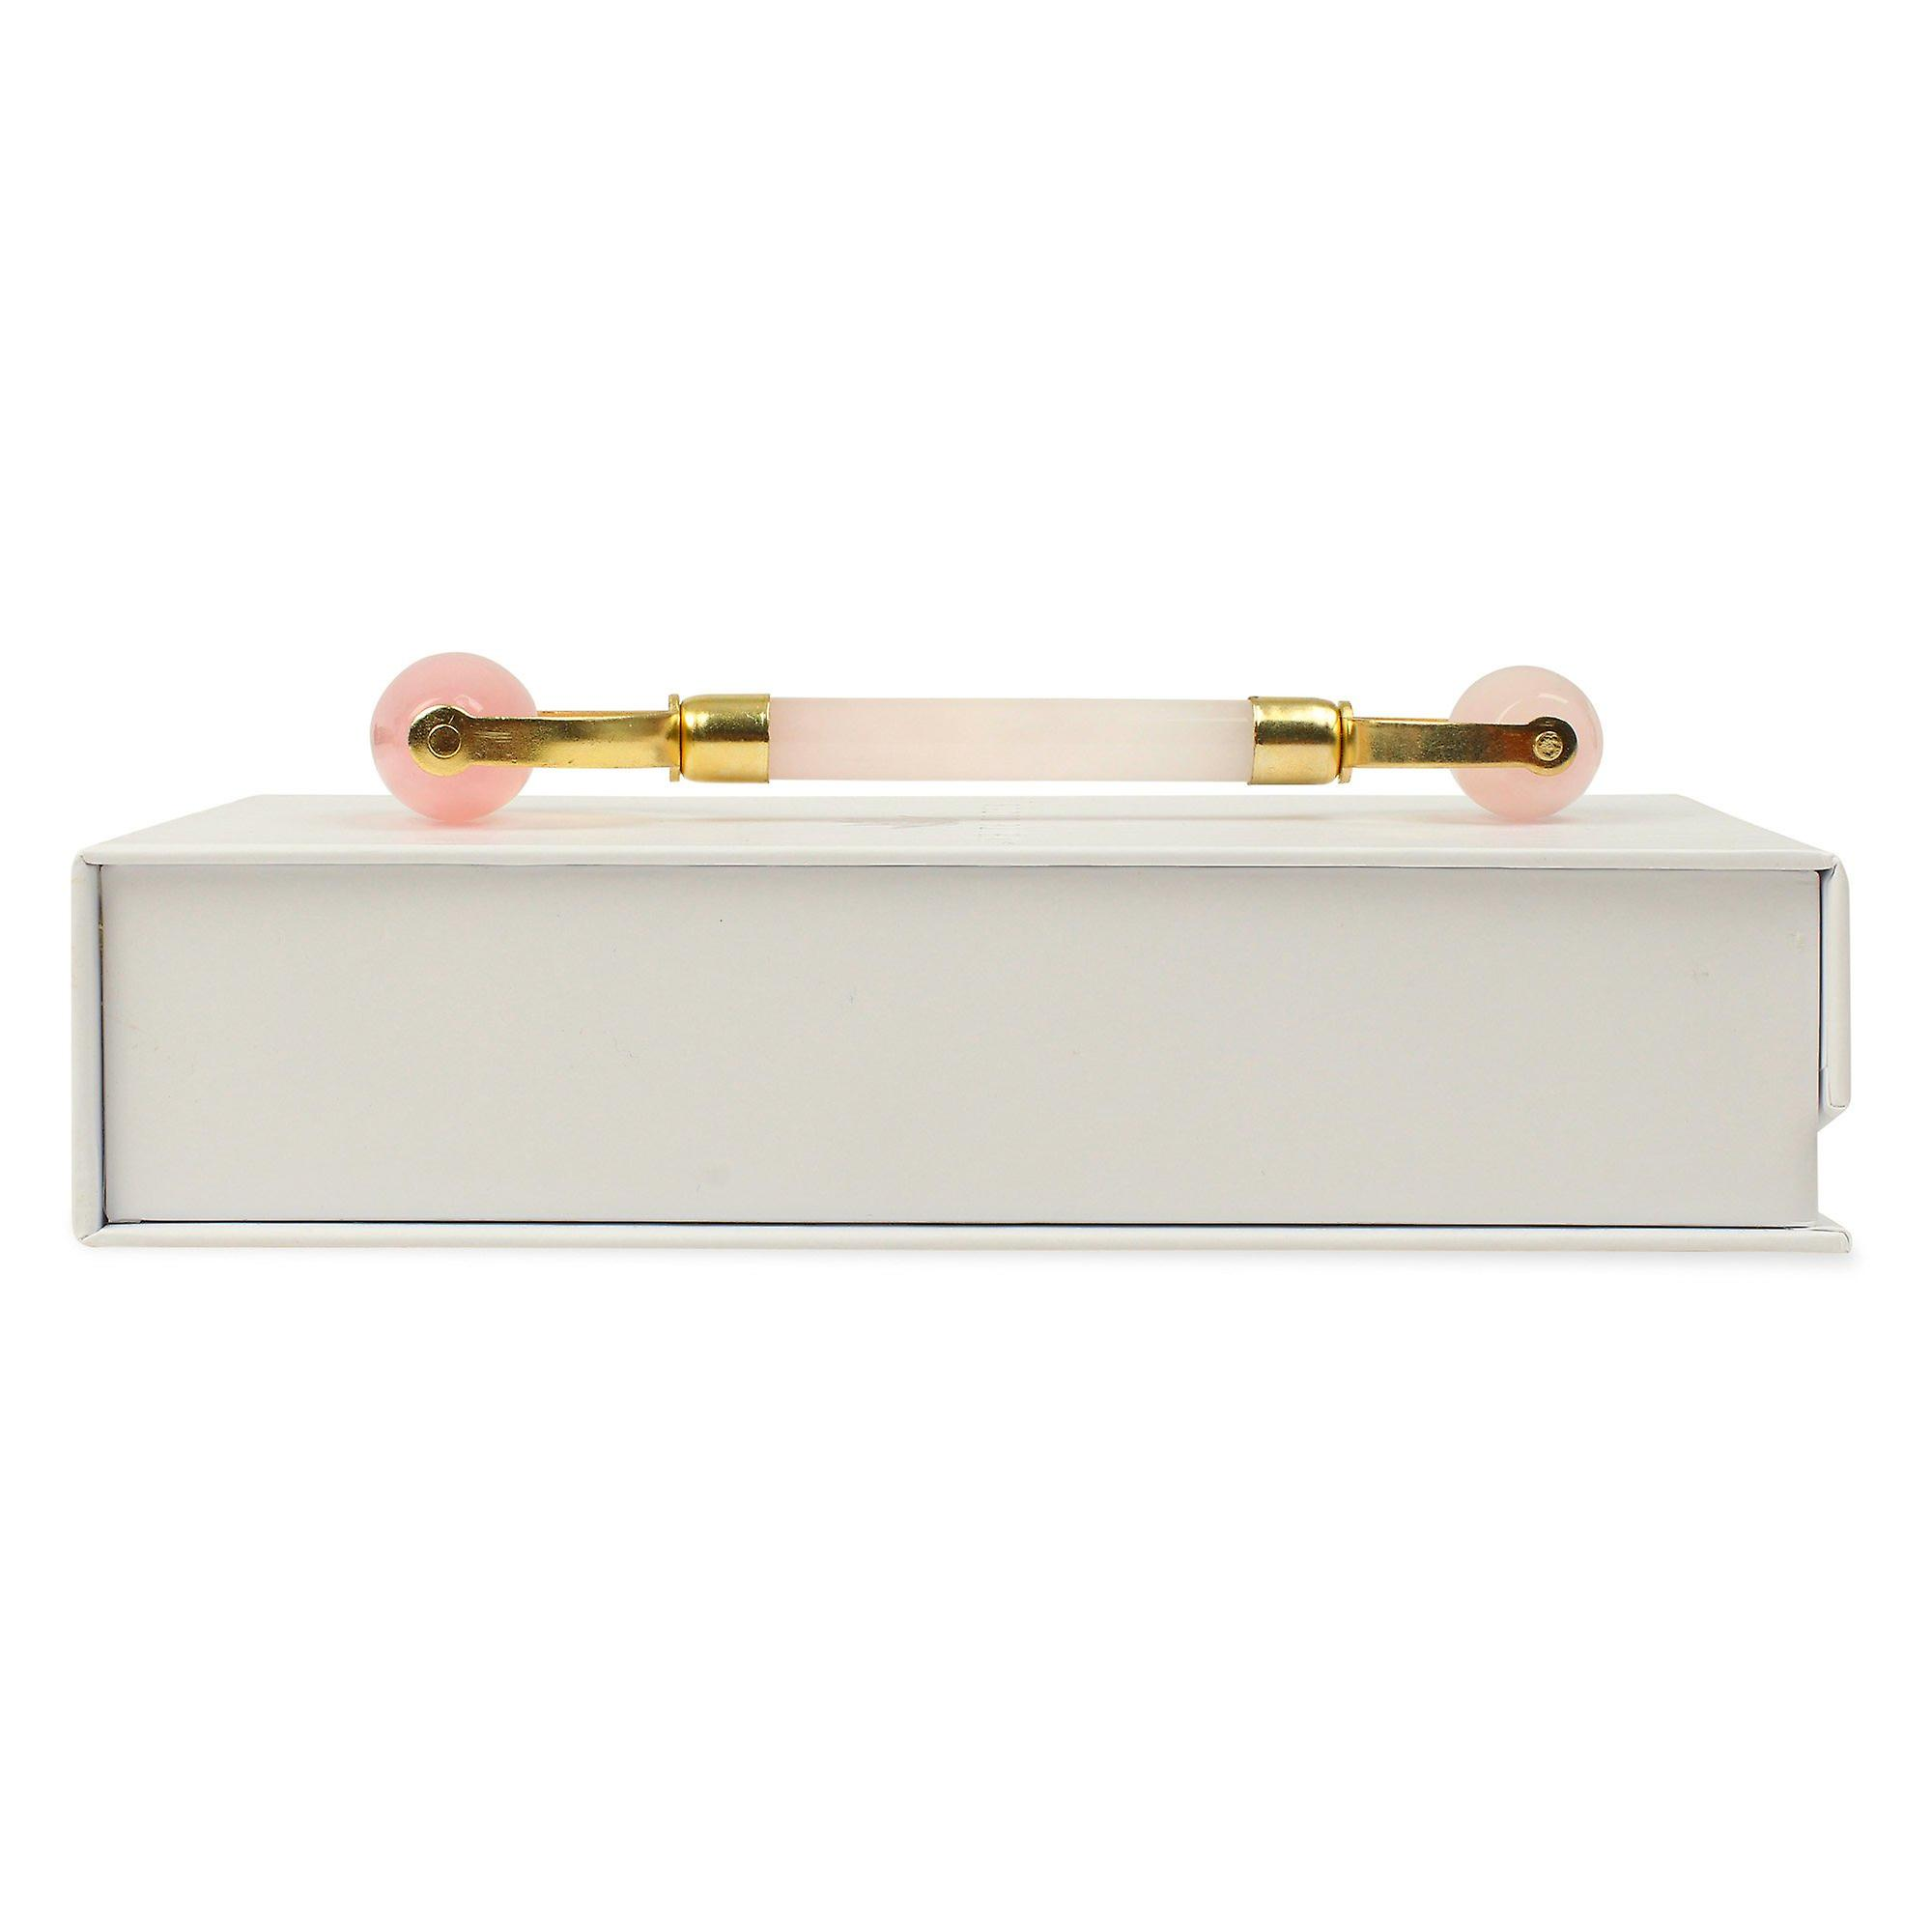 Double headed rose quartz roller - natural chemical free crystal in a silk lined box